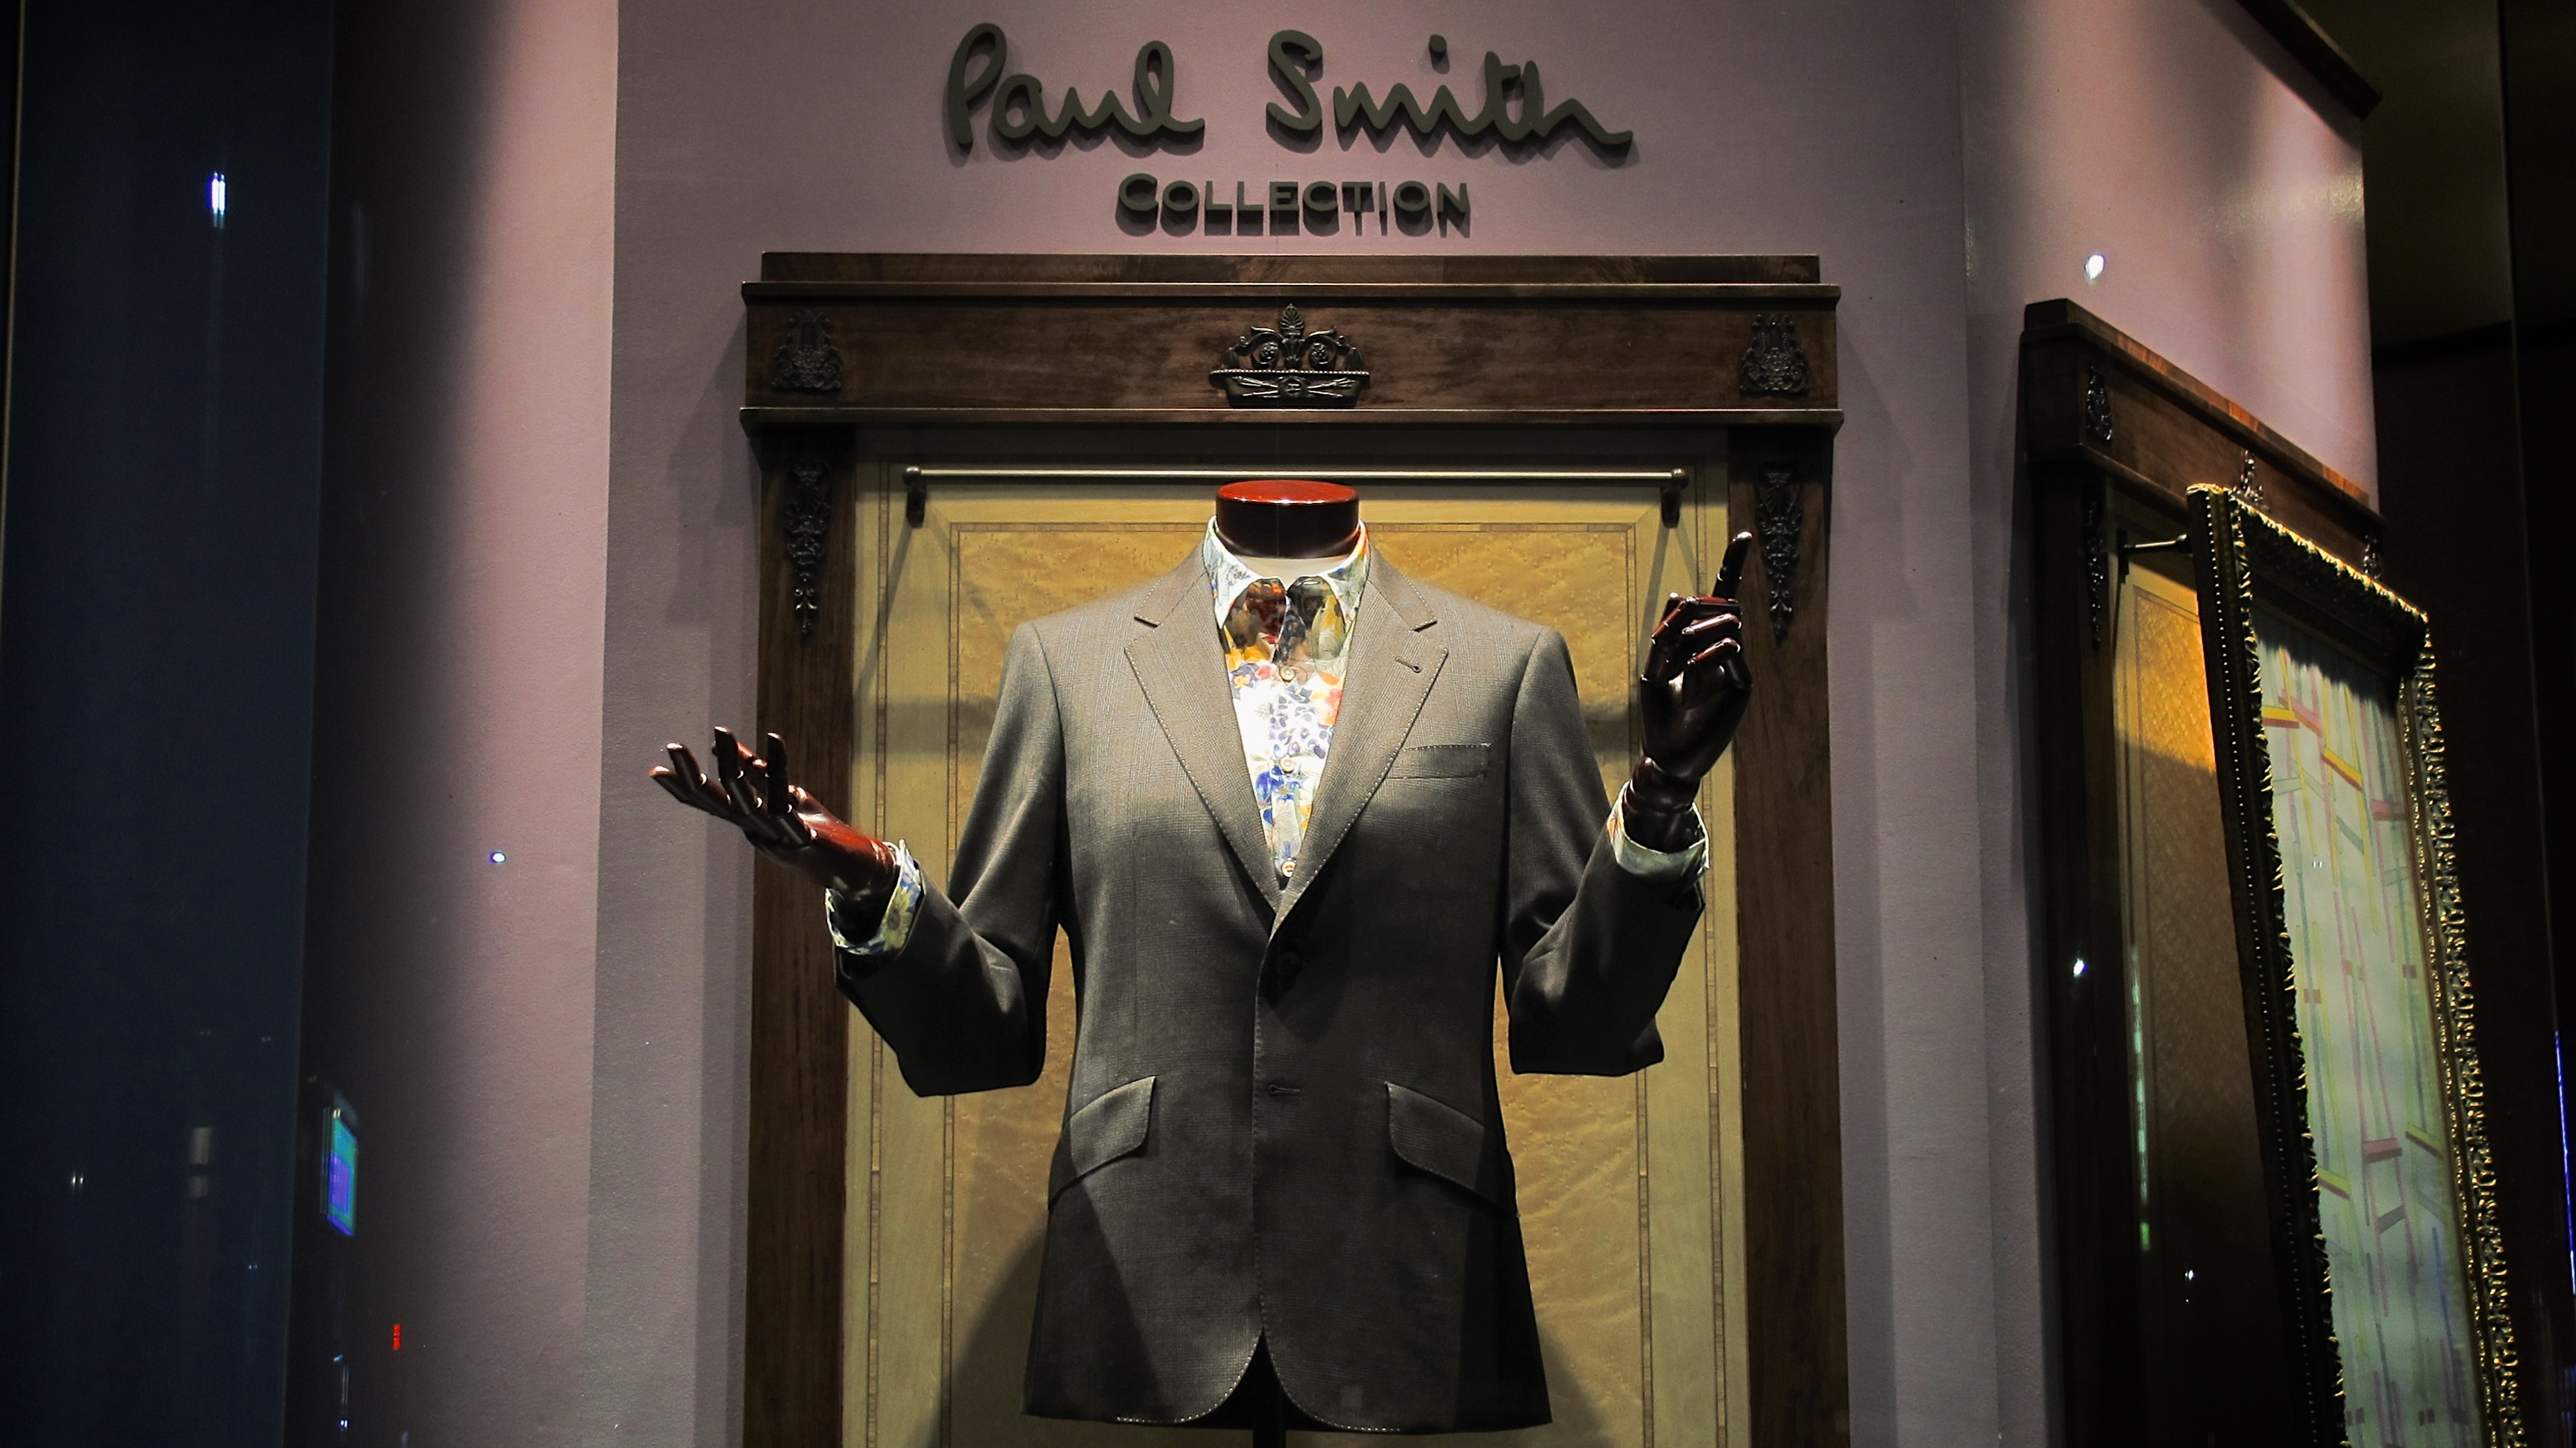 Picture of Paul Smith clothing in Japan